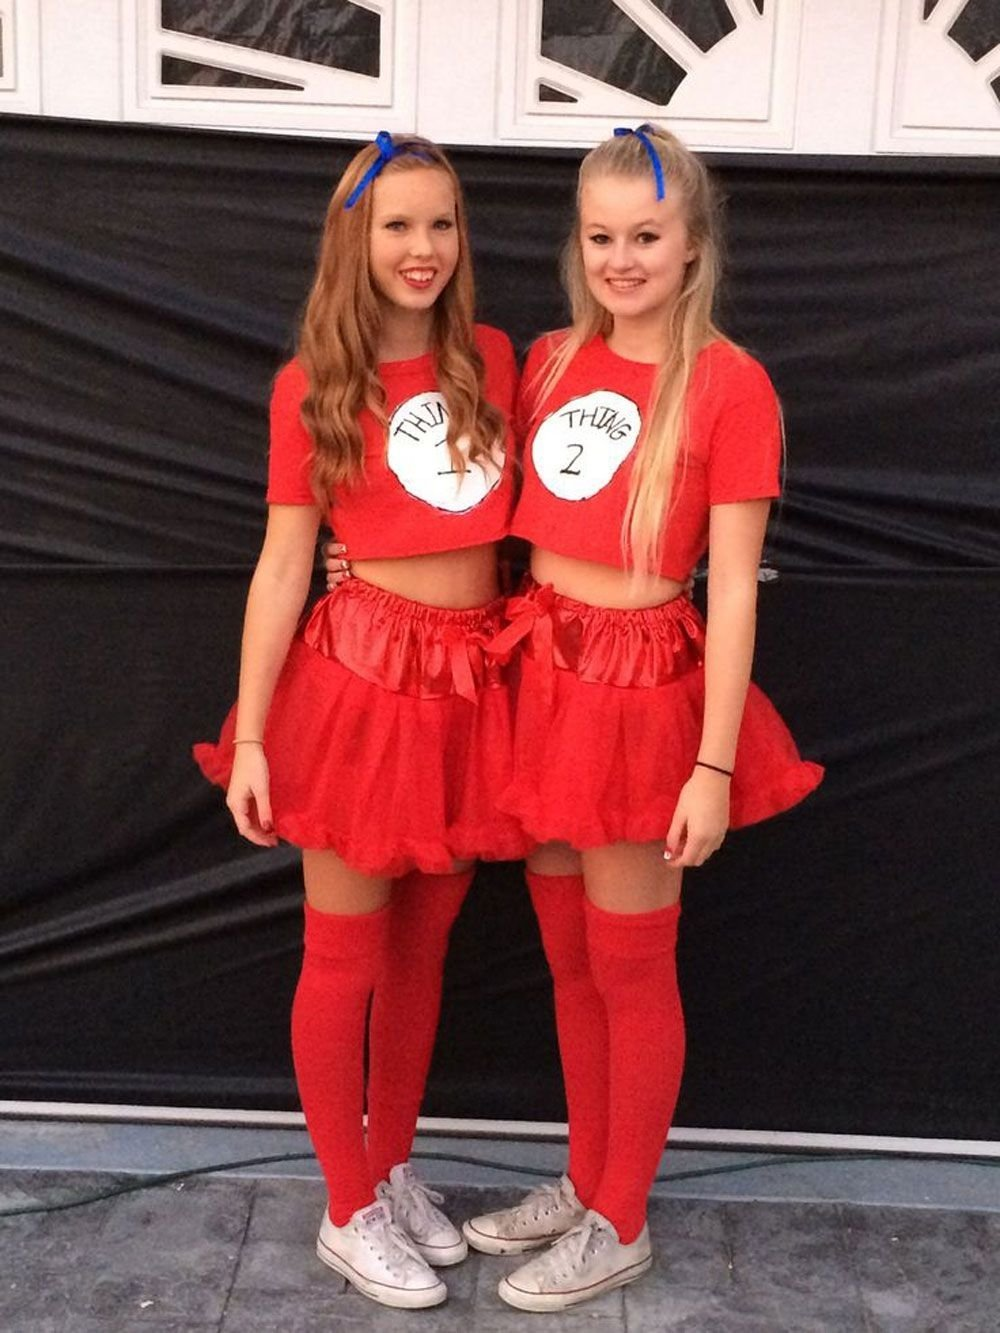 10 Elegant Costume Ideas For Two People 24 genius bff halloween costume ideas you need to try friend 10 2021